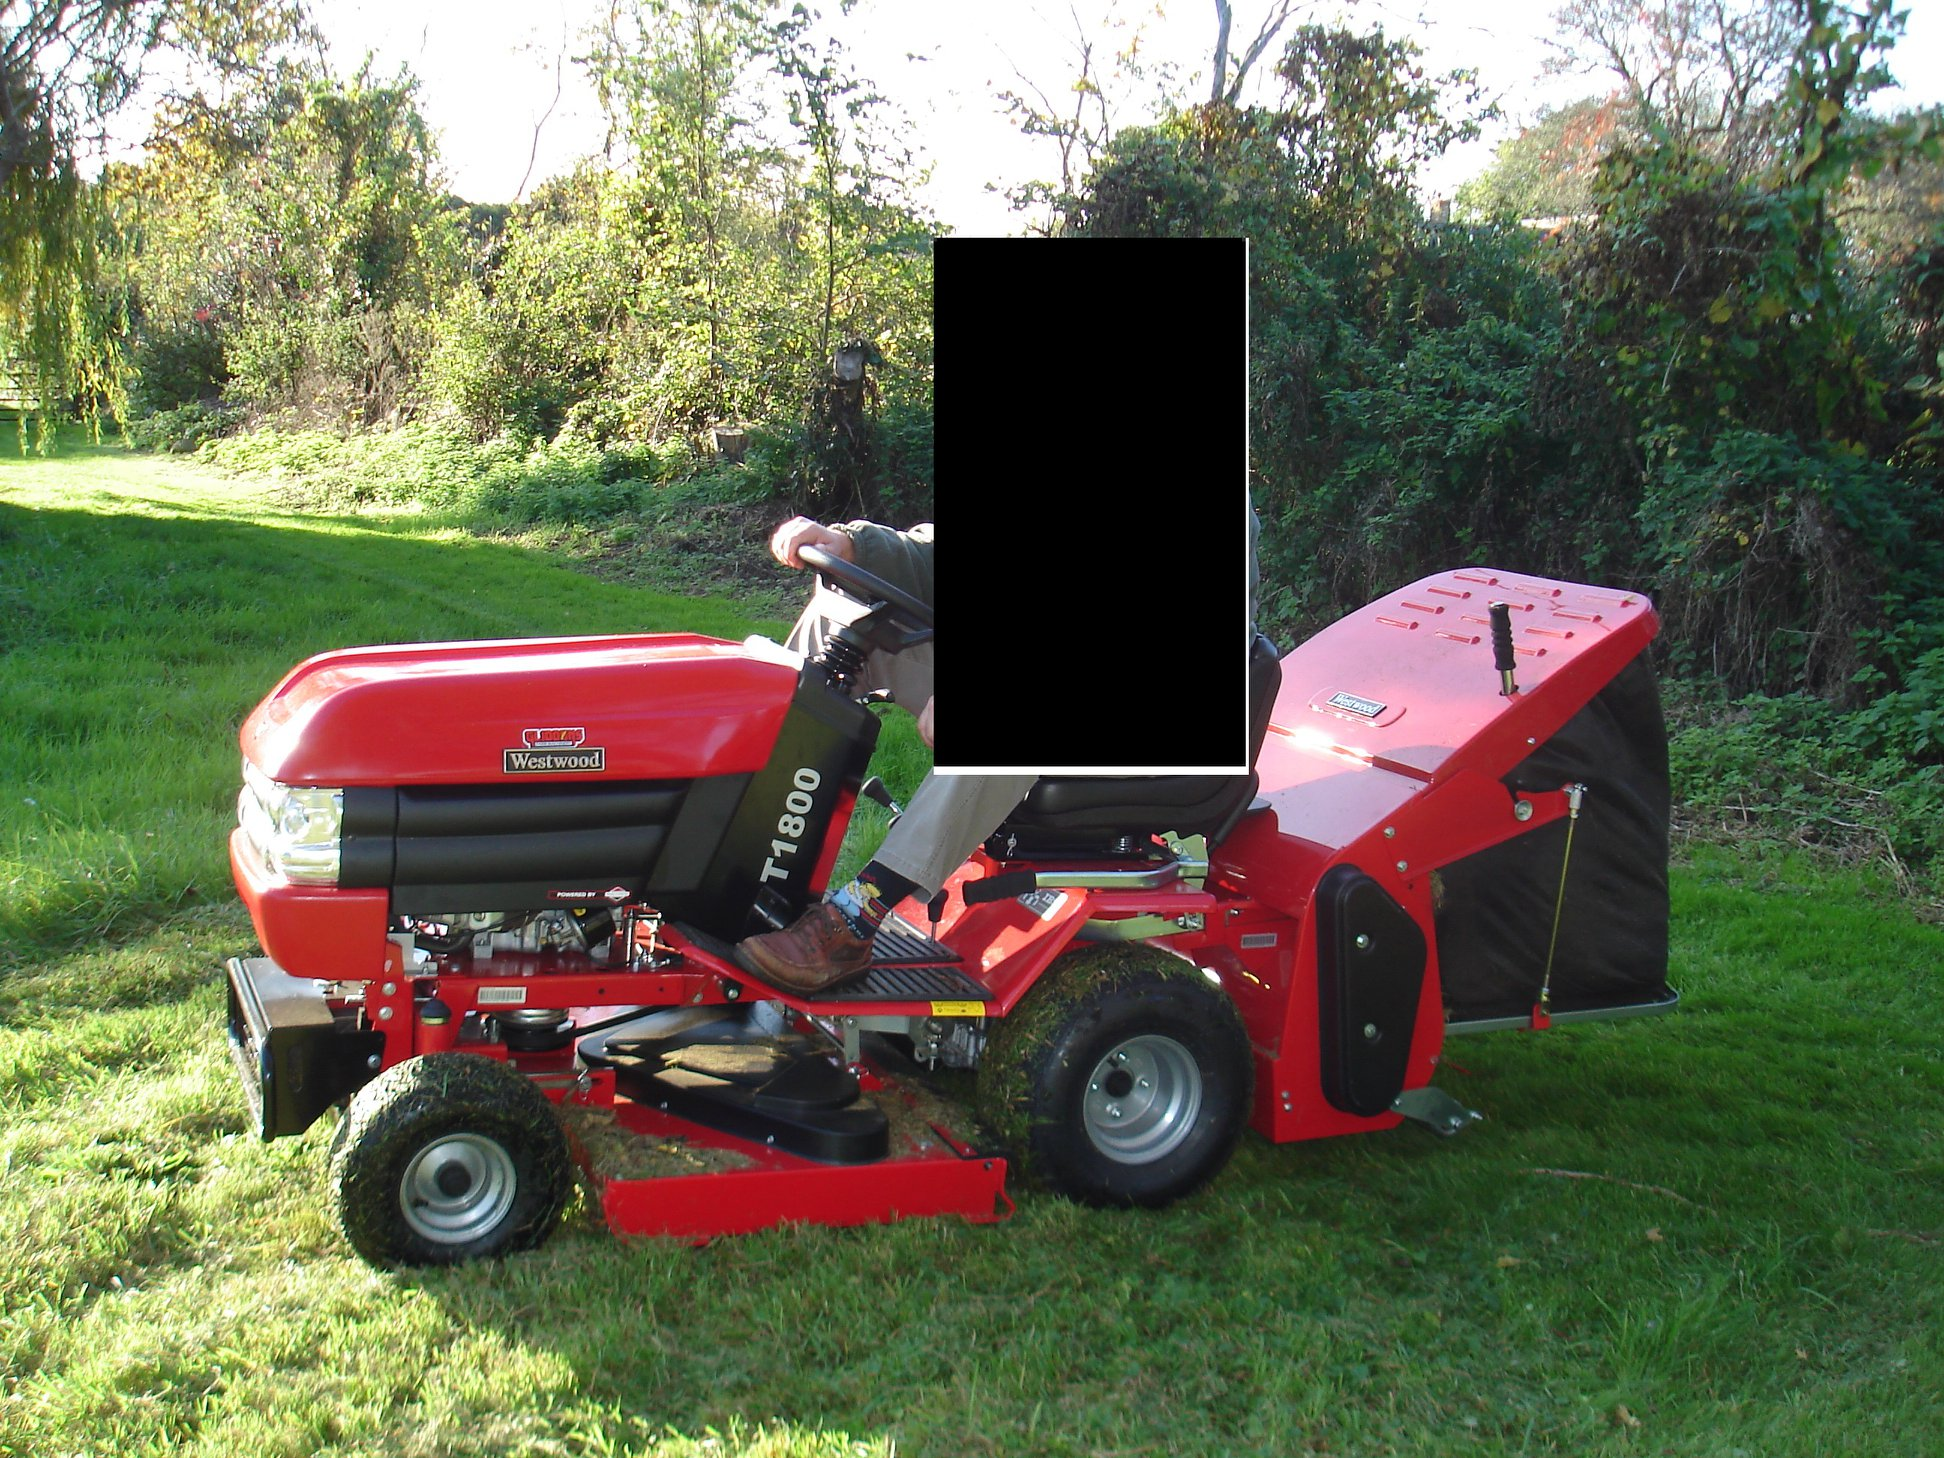 STOLEN: The Westwood ride-on motor went missing from Shurton